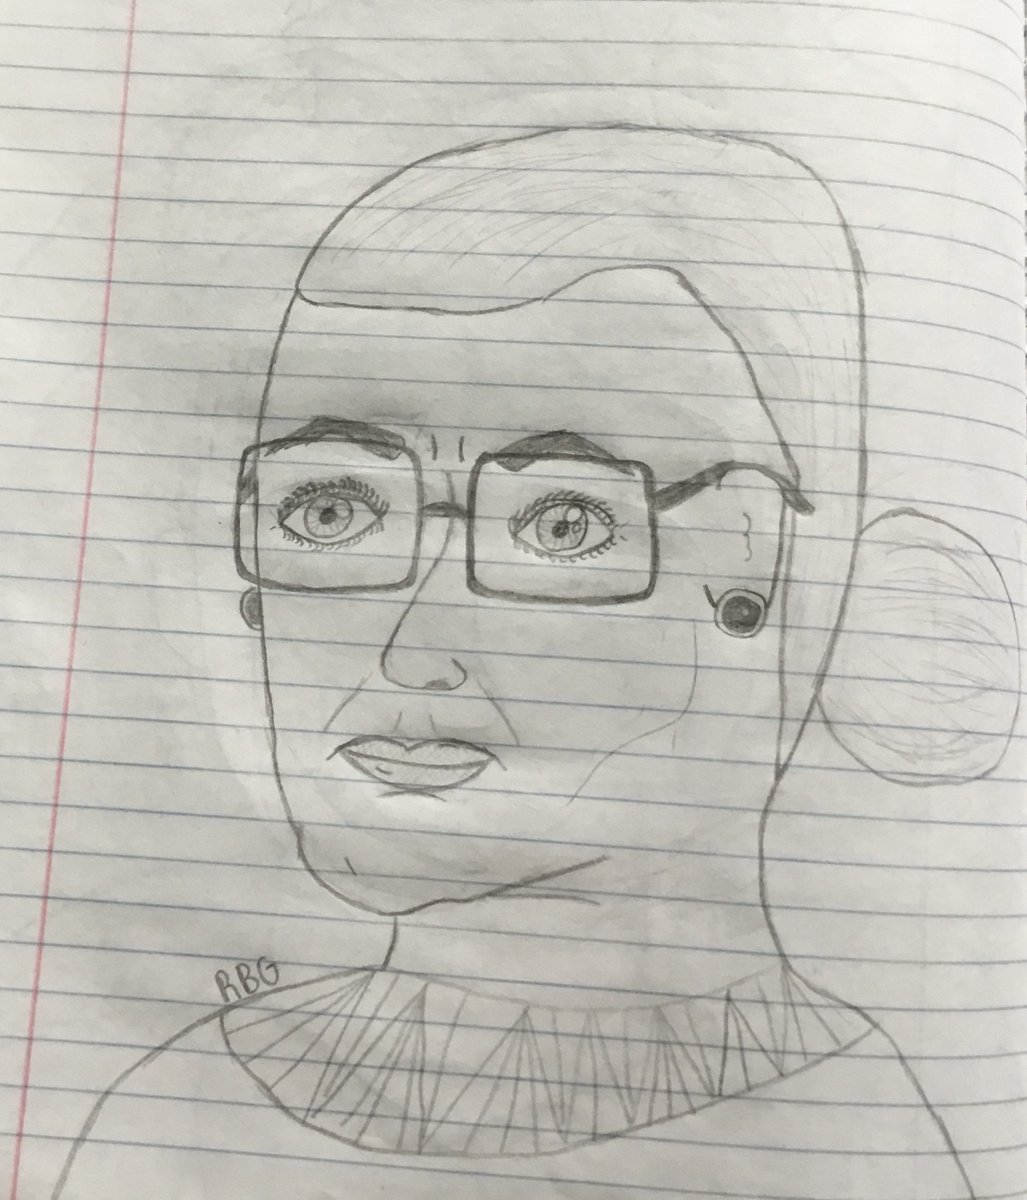 Check out this portrait a 5th grader made of Ruth Bader Ginsburg over the summer! <a target='_blank' href='http://search.twitter.com/search?q=padlet'><a target='_blank' href='https://twitter.com/hashtag/padlet?src=hash'>#padlet</a></a> <a target='_blank' href='http://twitter.com/APSArts'>@APSArts</a> <a target='_blank' href='http://twitter.com/APS_FleetES'>@APS_FleetES</a> <a target='_blank' href='https://t.co/zlh9iai8Ez'>https://t.co/zlh9iai8Ez</a>